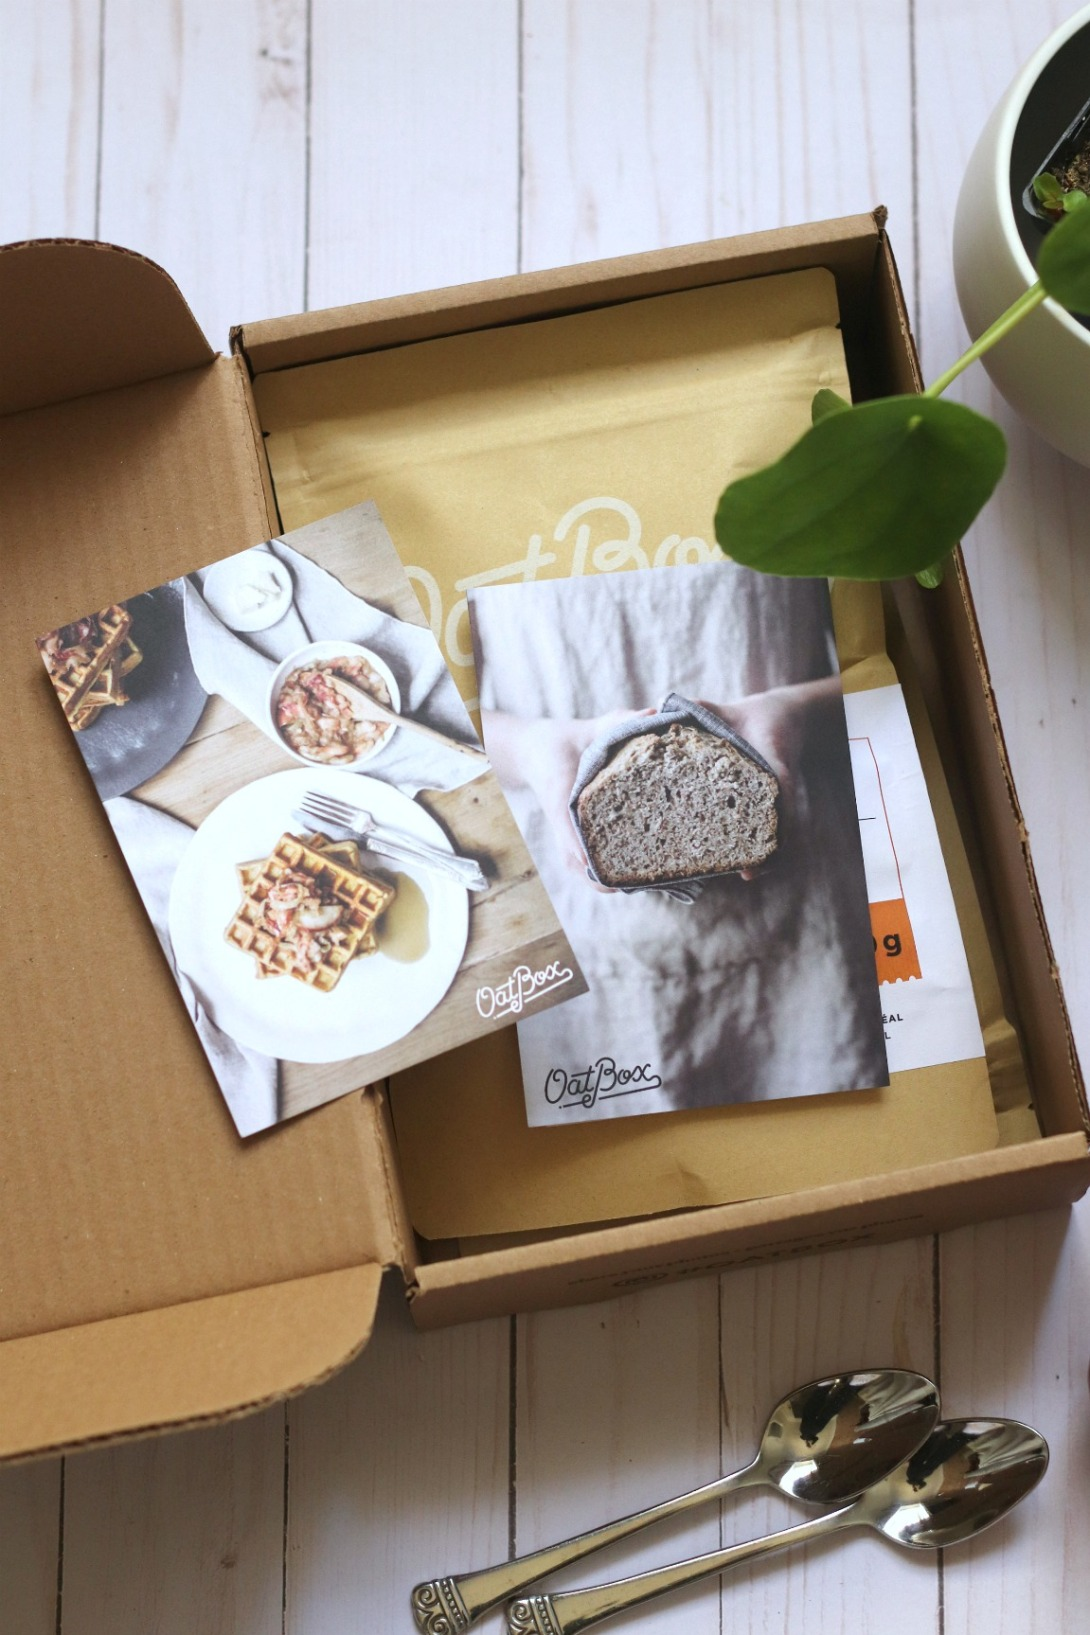 OatBox October 2019 recipe cards tst